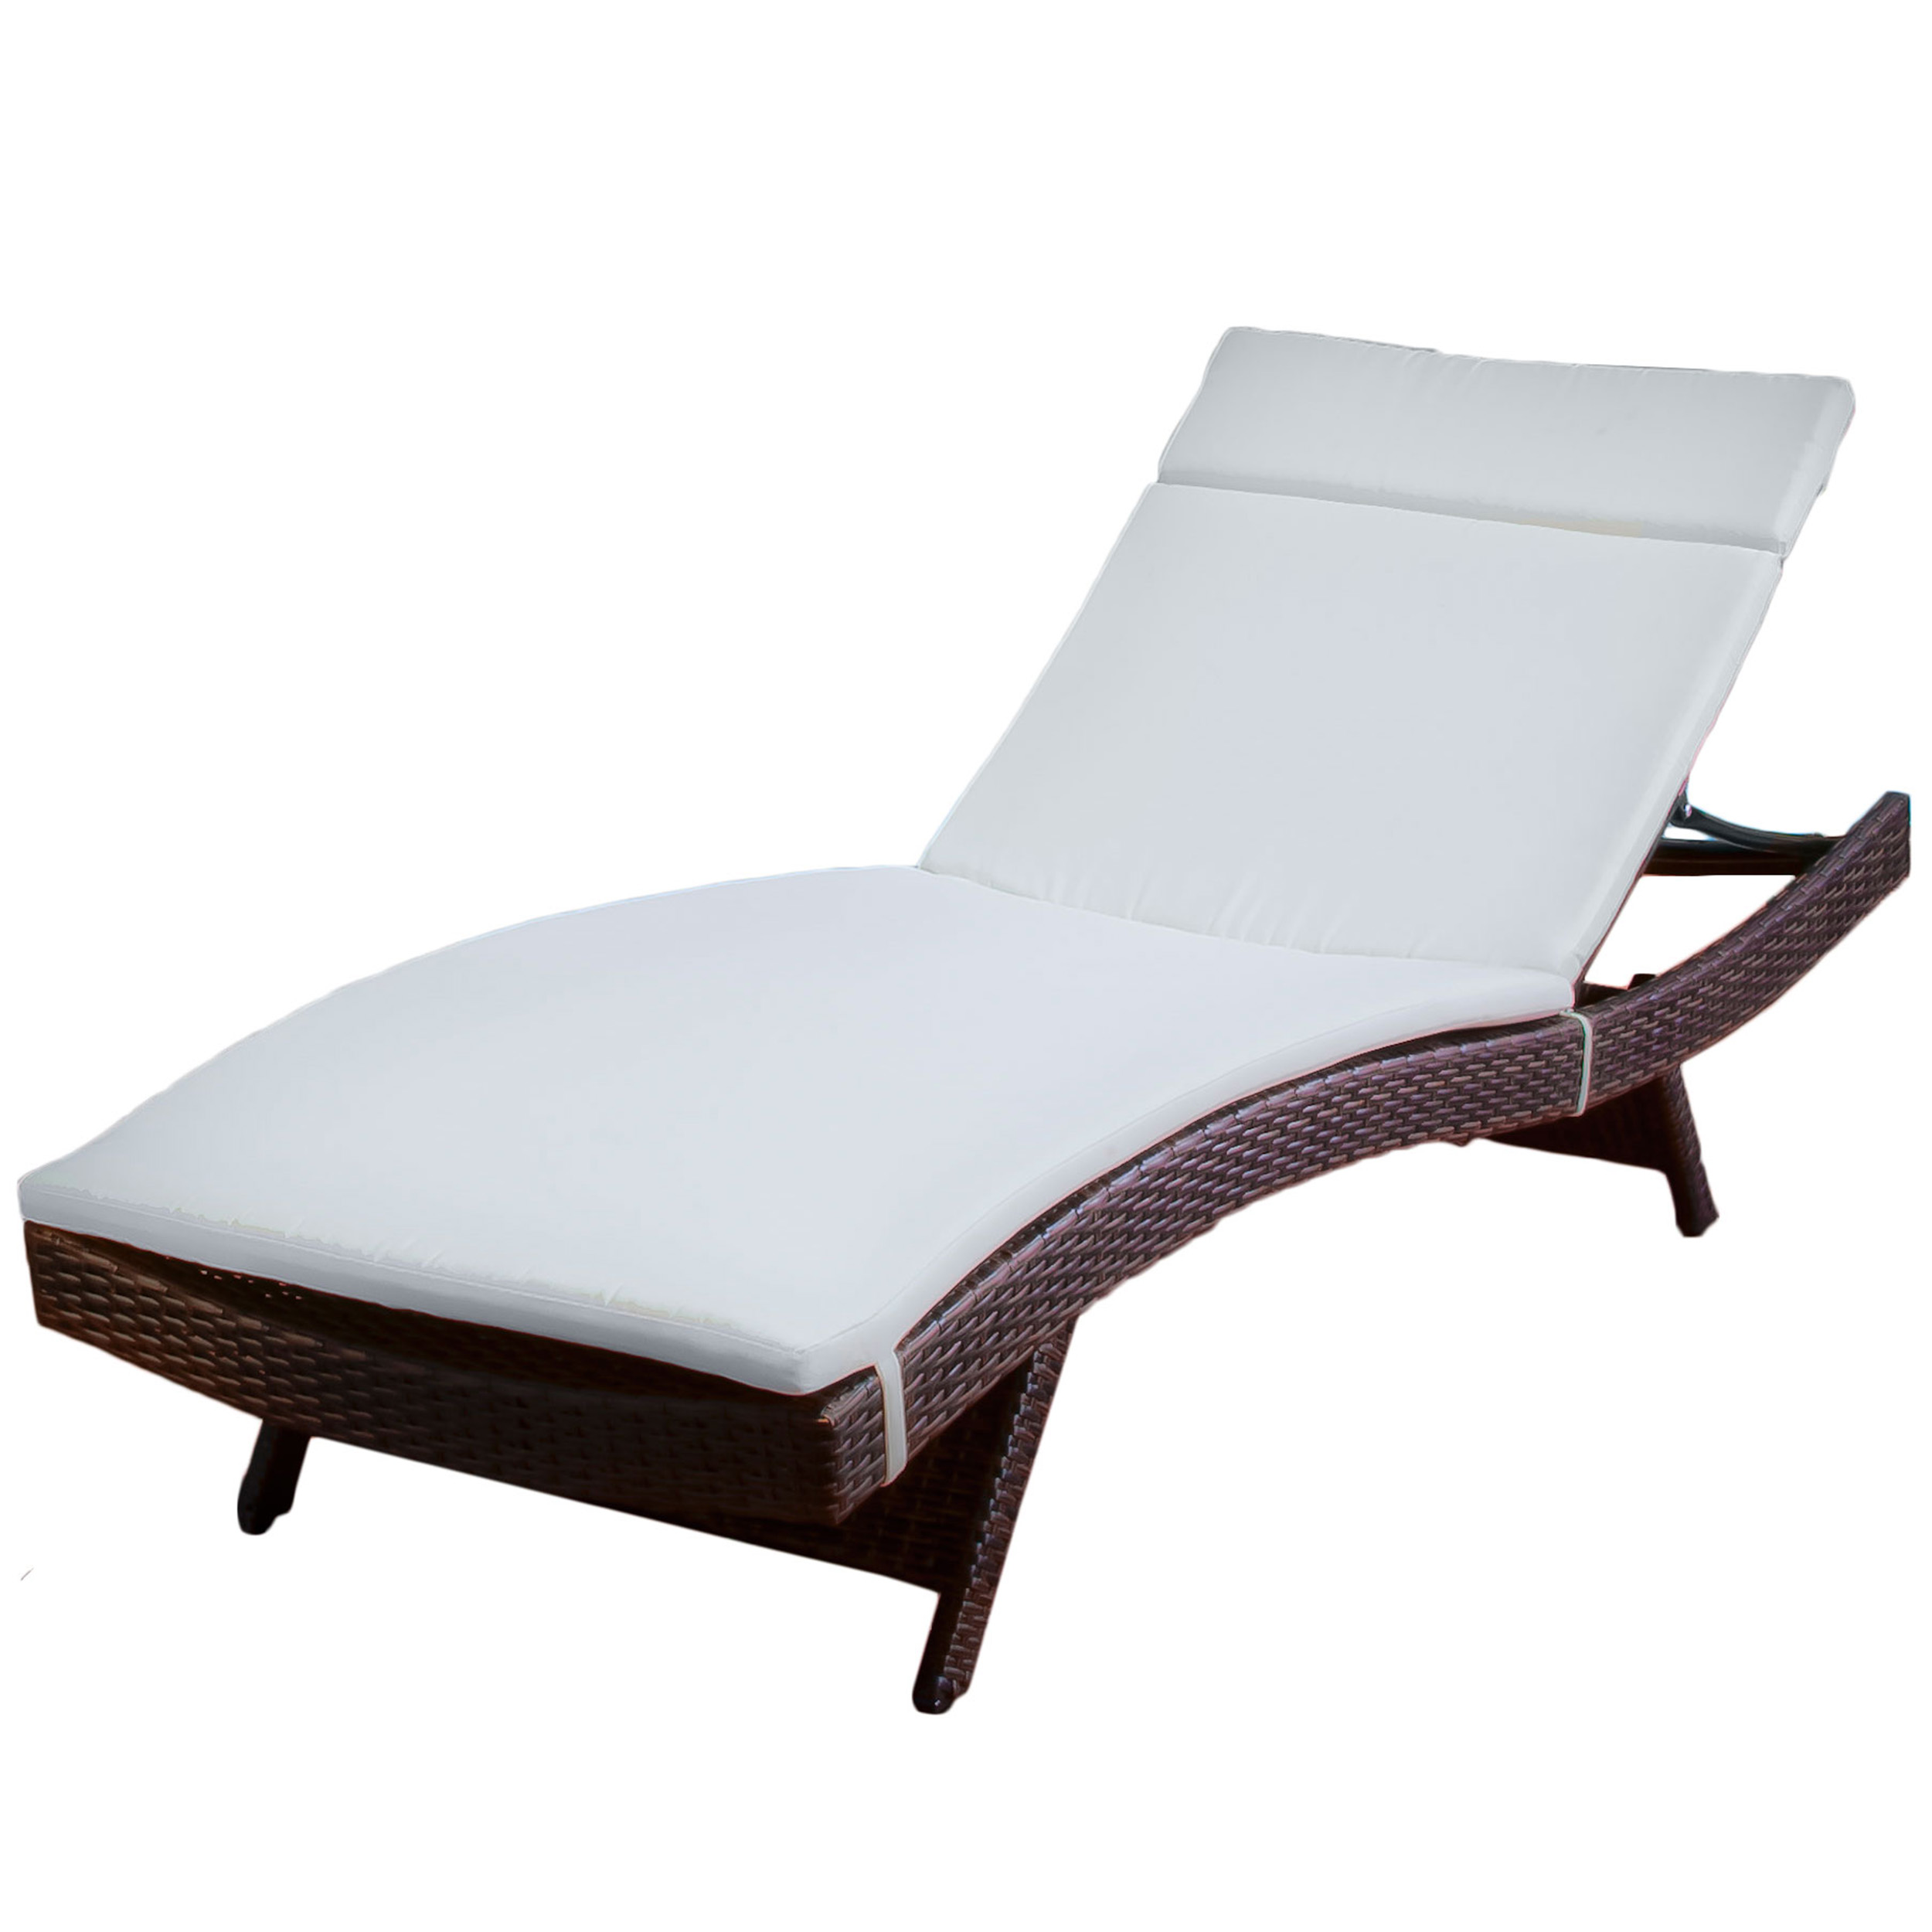 Wicker Recliners Outdoor Brown Wicker Adjustable Chaise Lounge with Beige Cushion